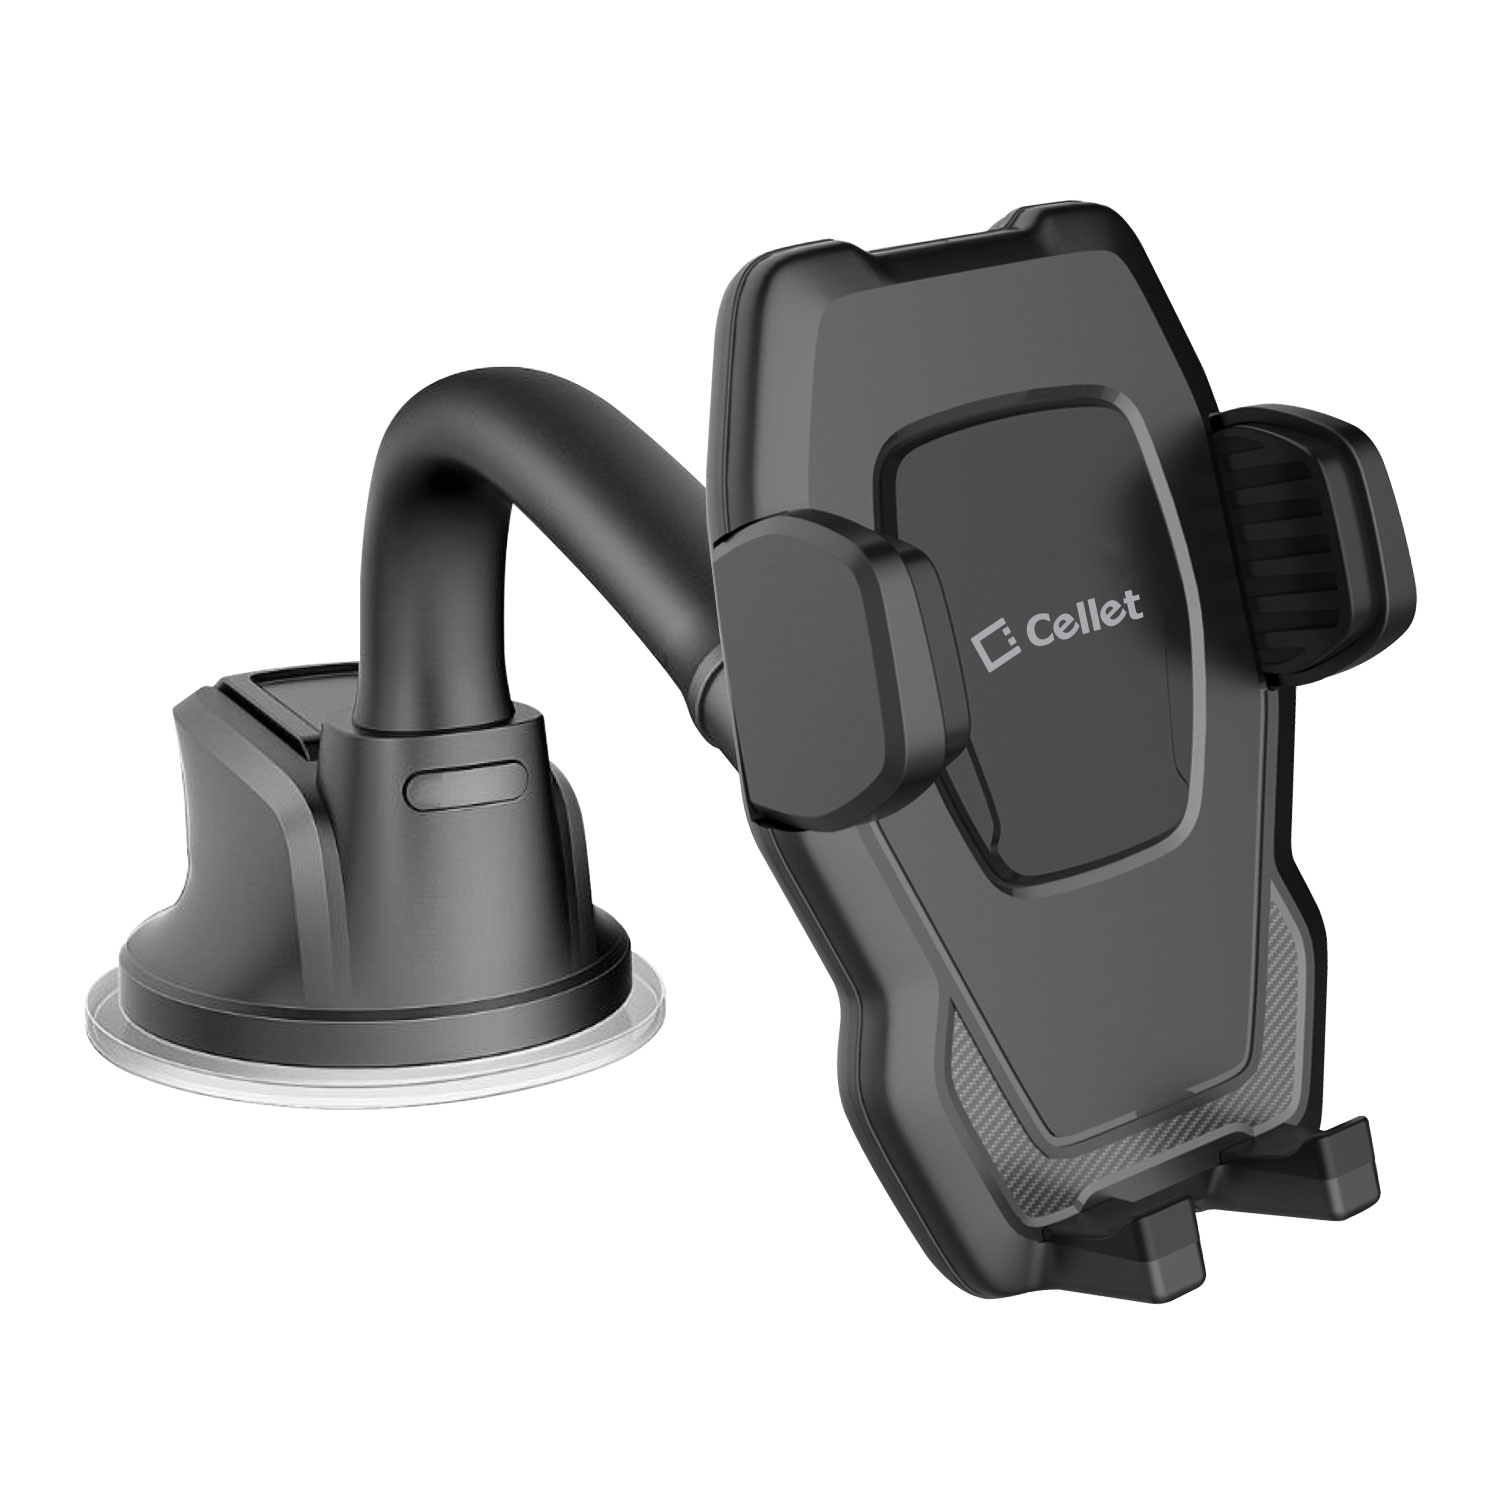 Samsung Galaxy A50 Windshield Phone Holder Goose Neck Black